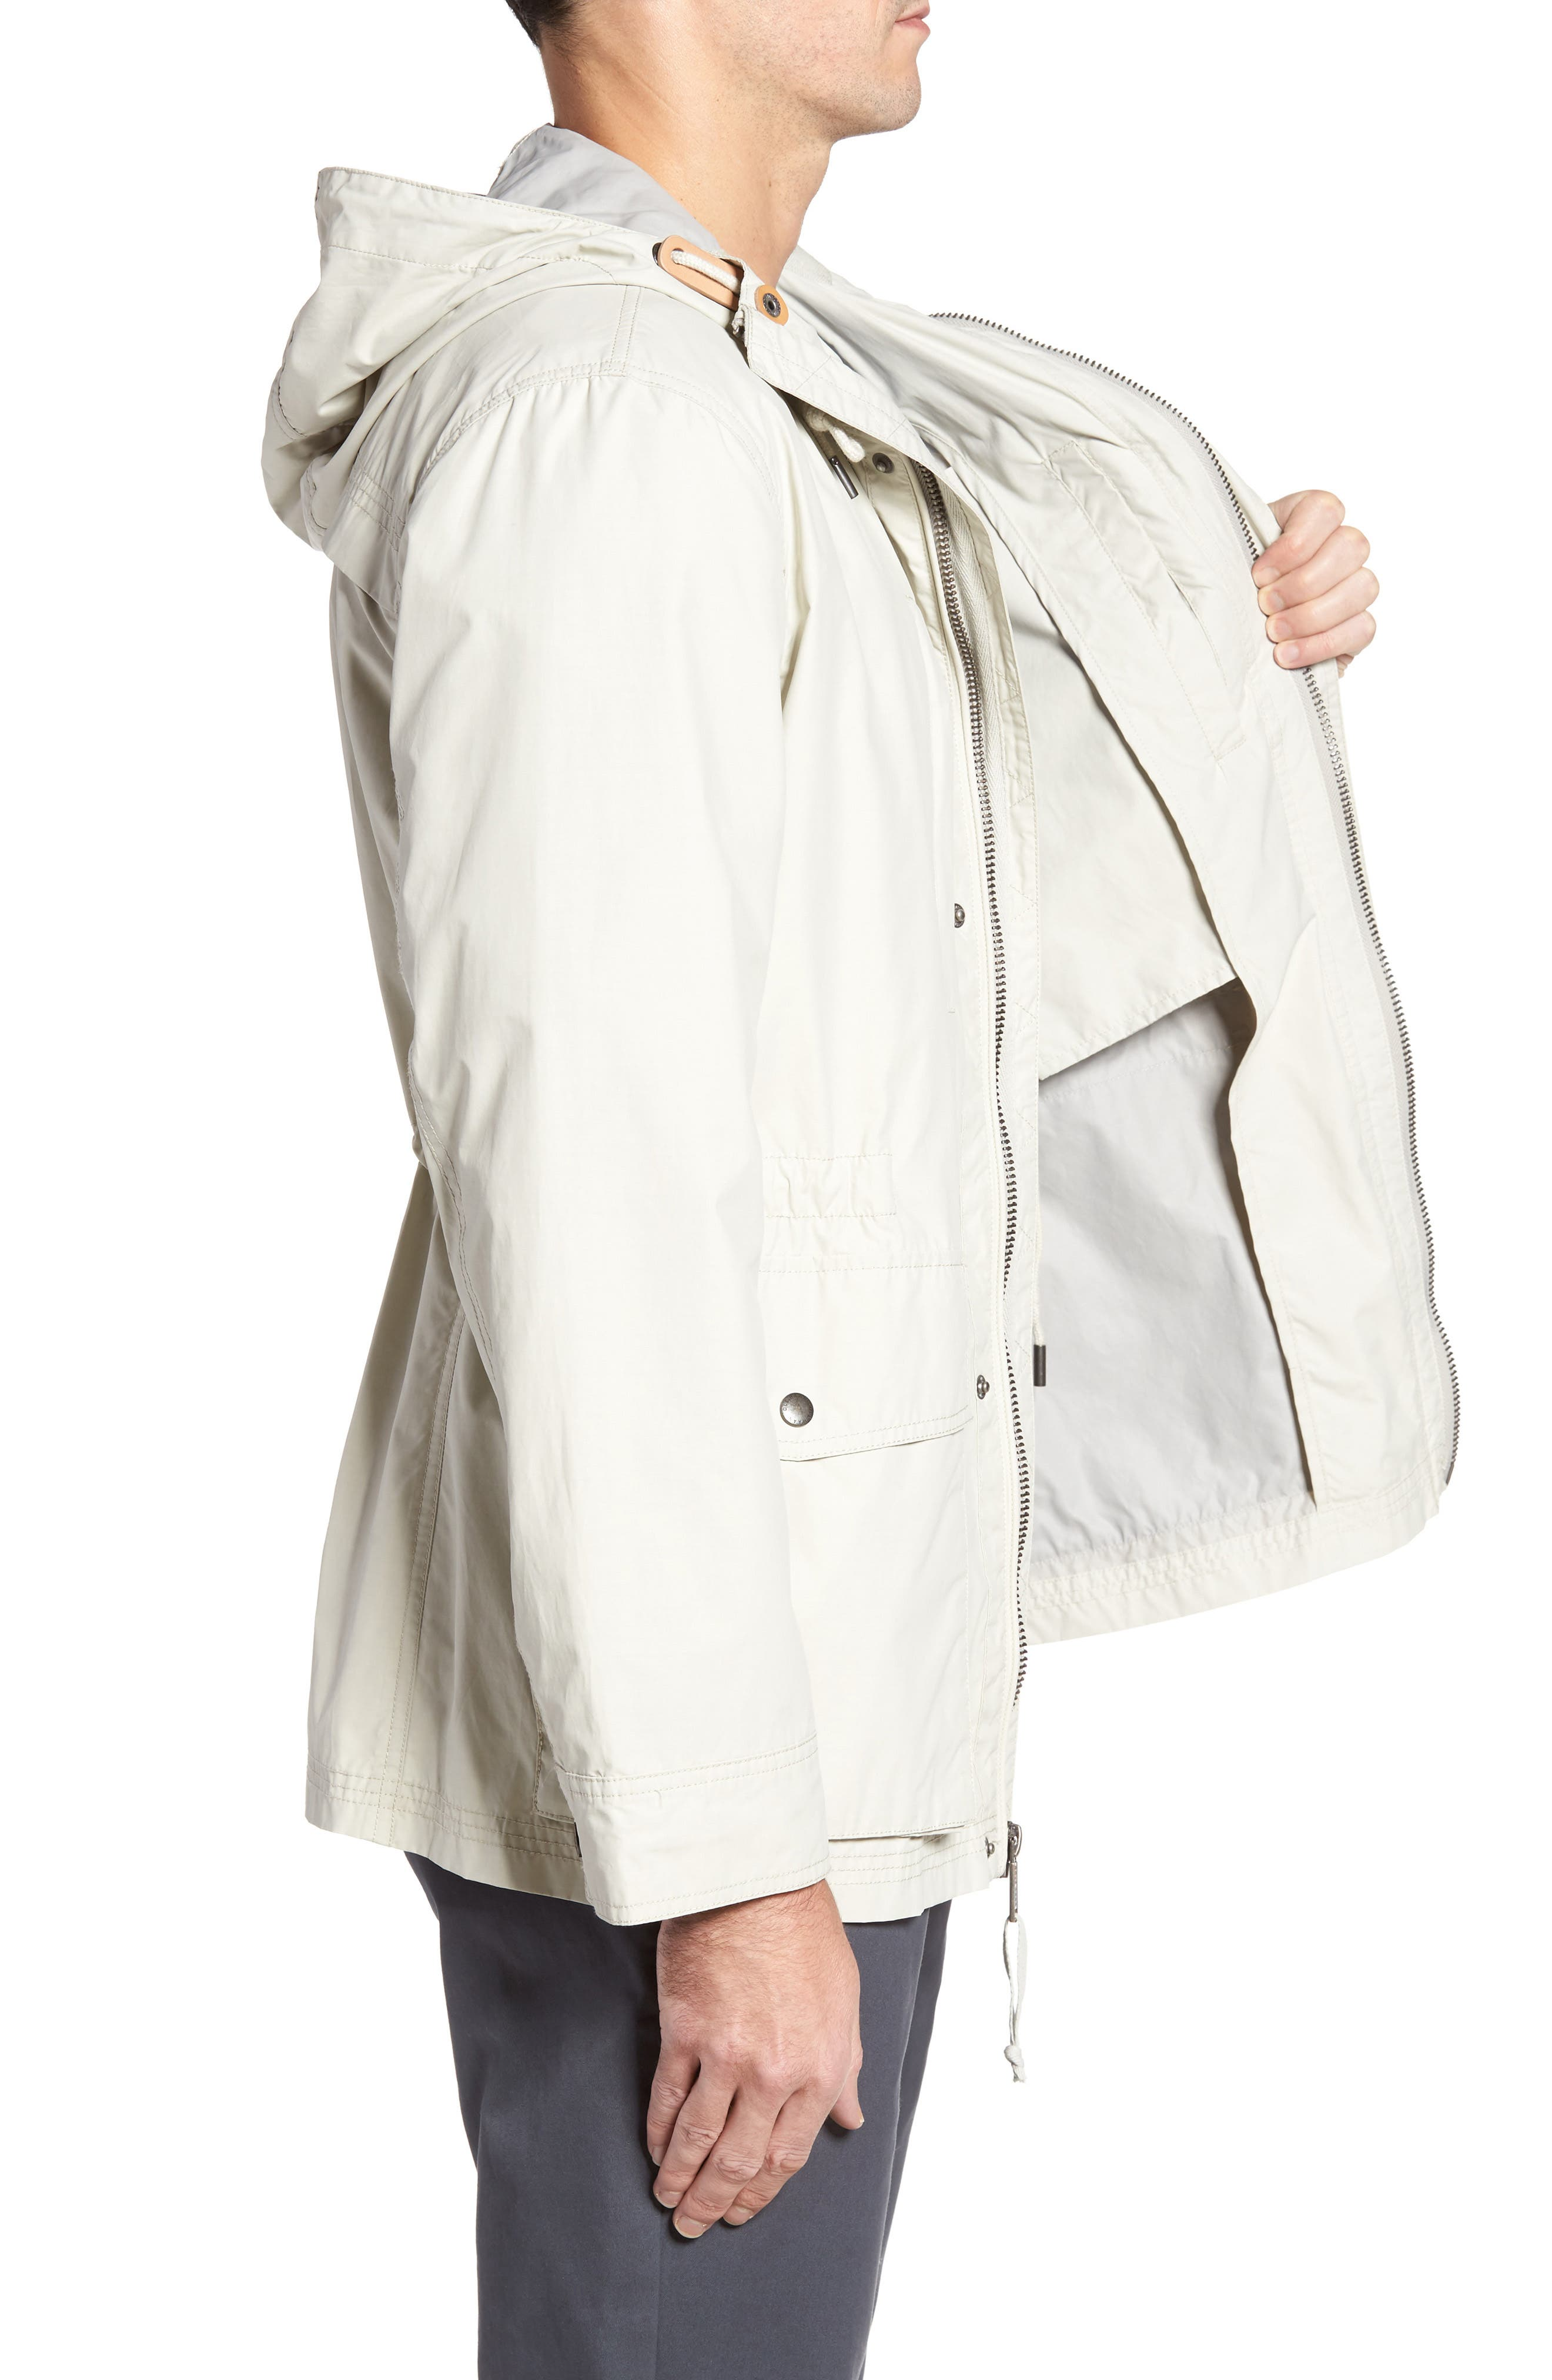 COLE HAAN,                             Water Repellent Hooded Jacket,                             Alternate thumbnail 3, color,                             STONE